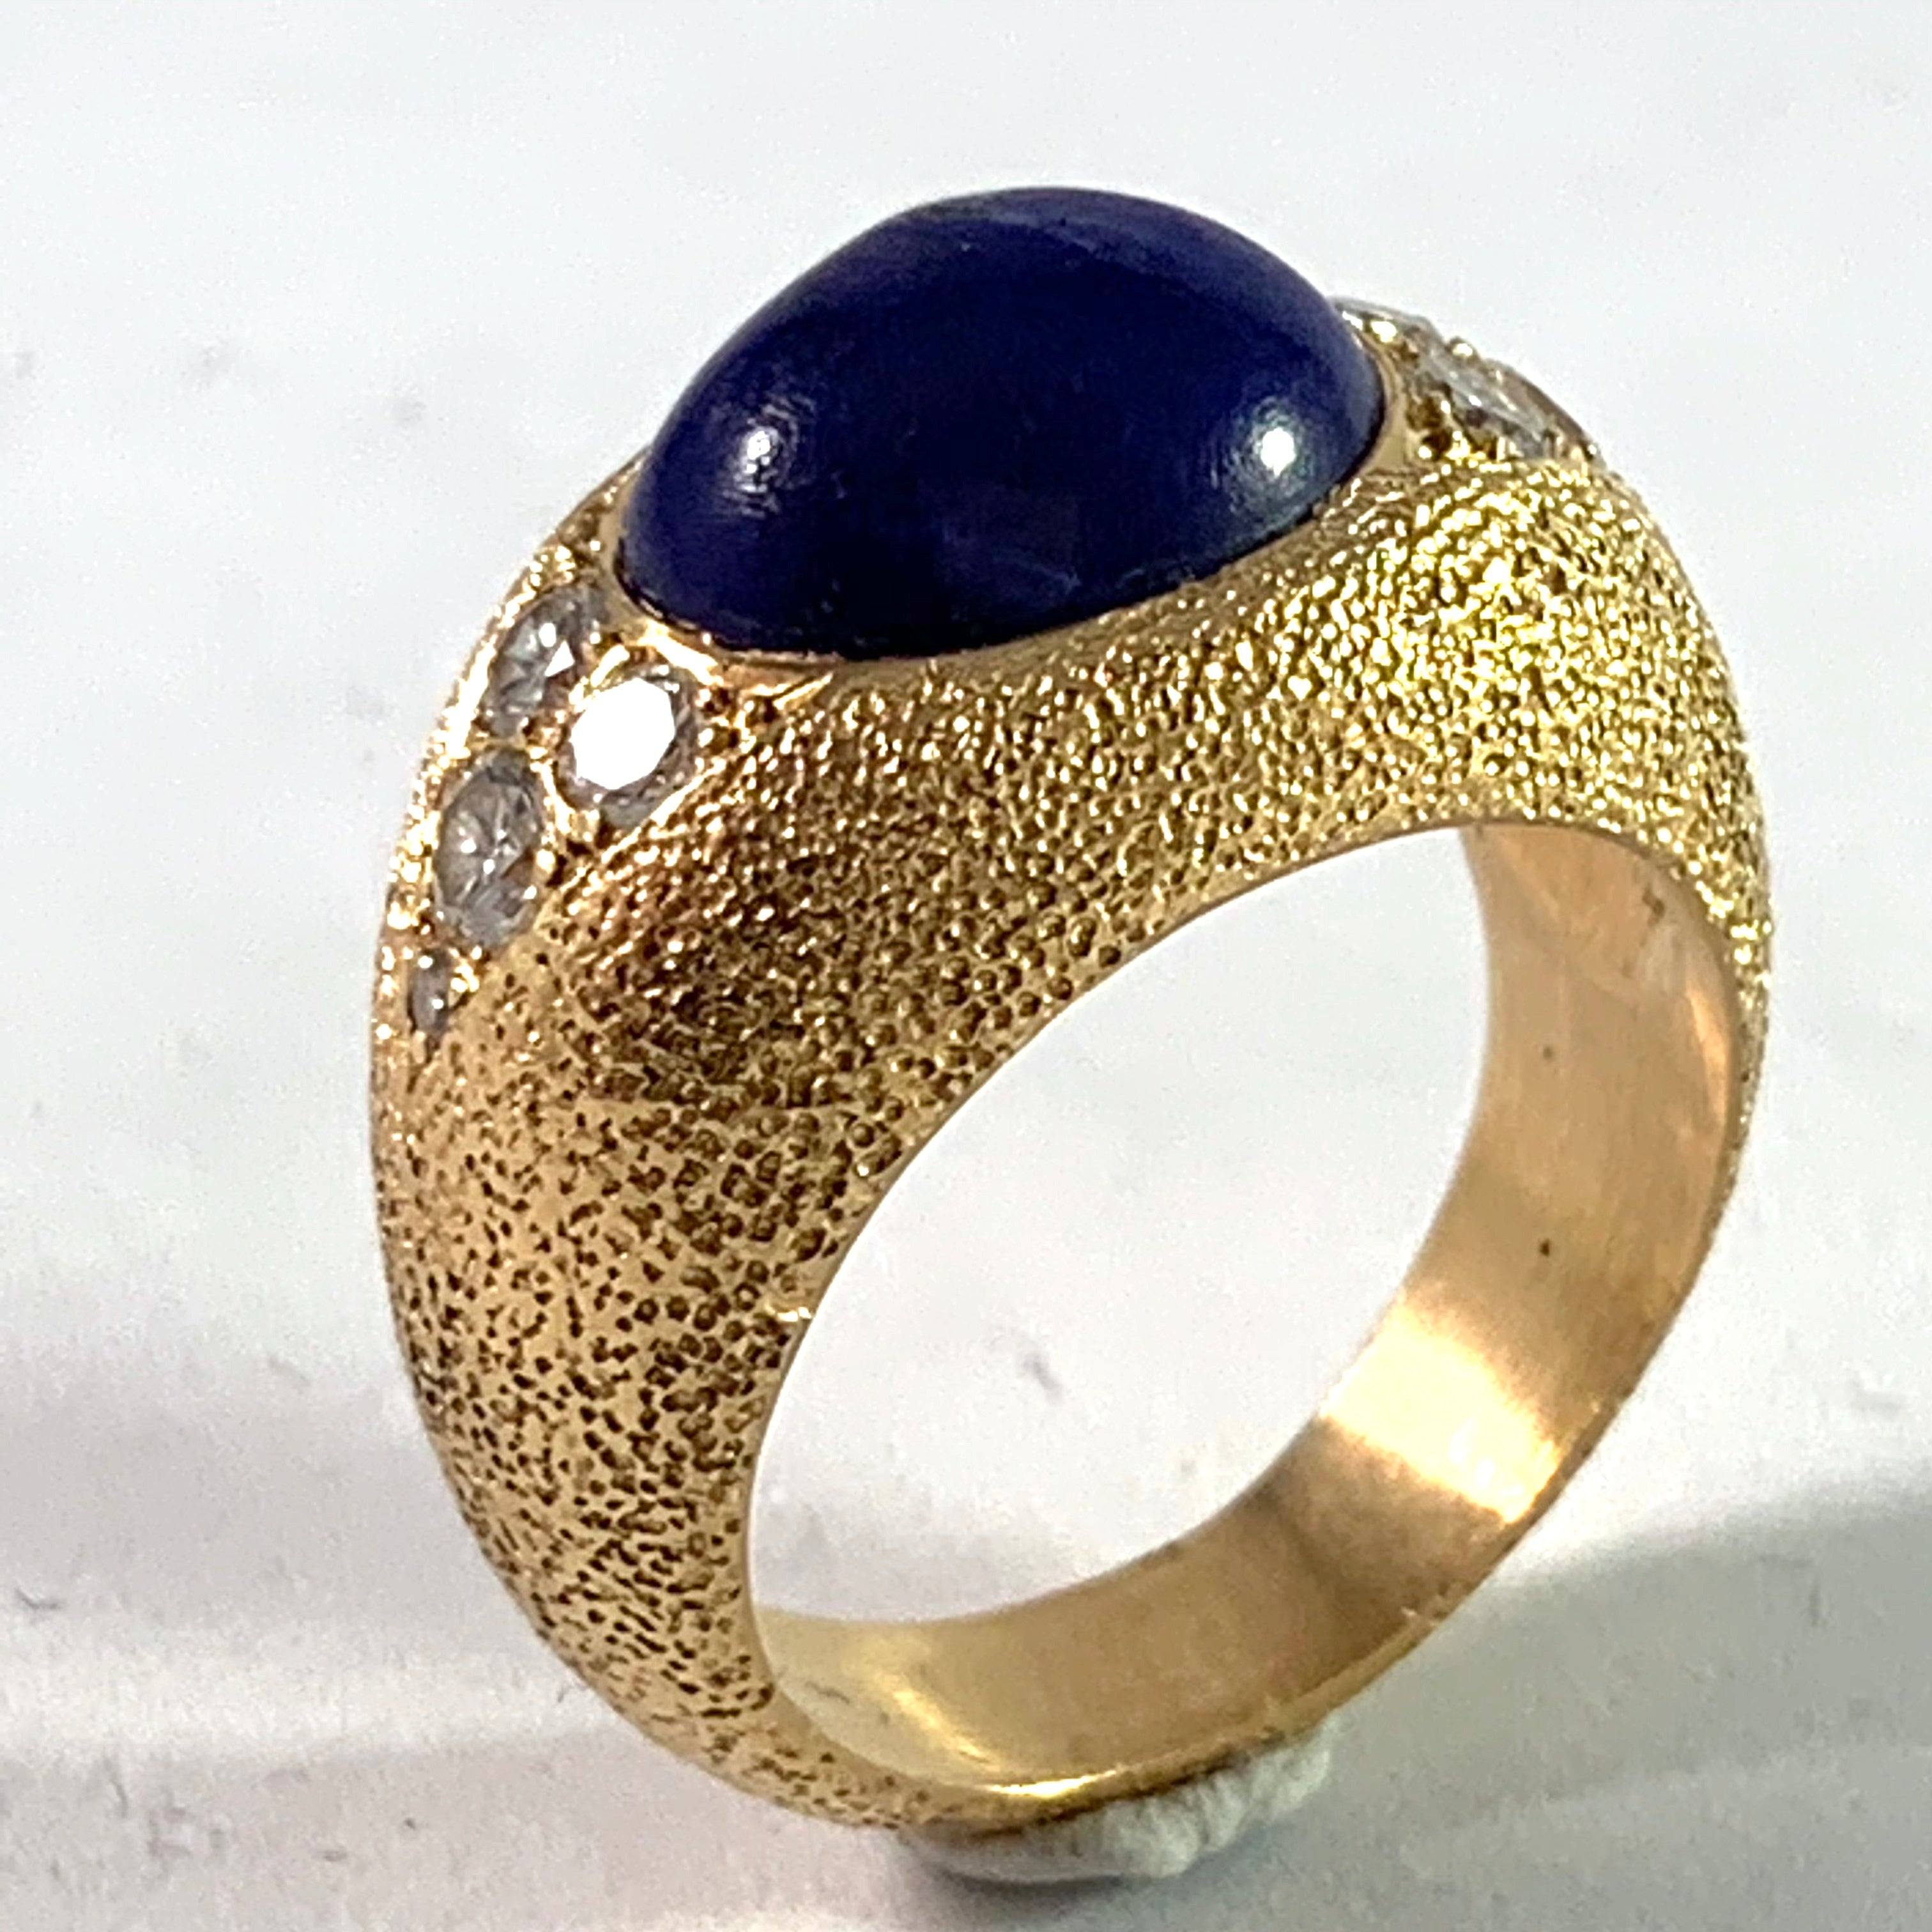 1960s gold cocktail ring